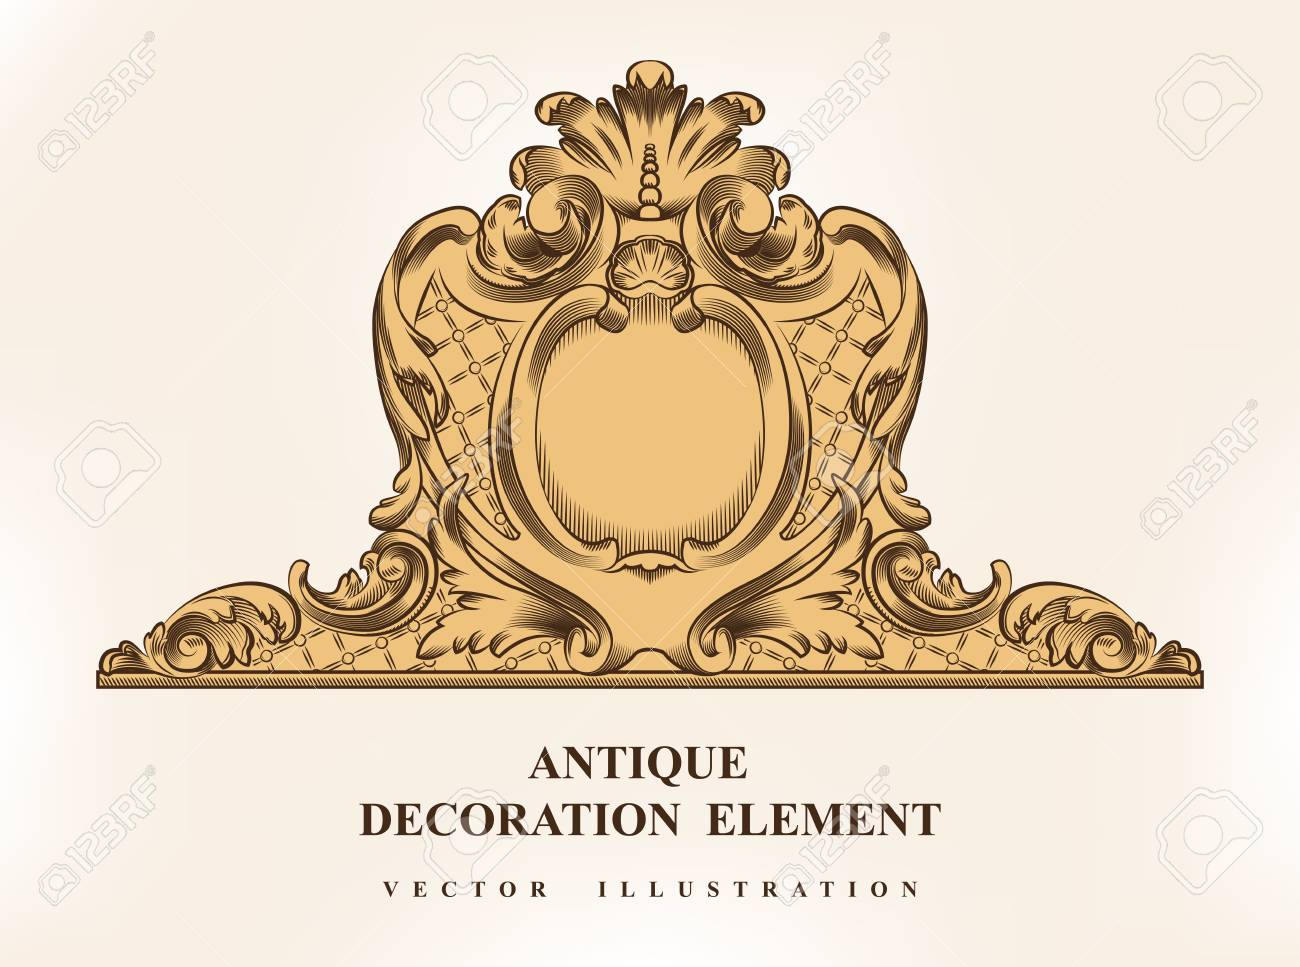 Vintage Architectural Decoration Elements For Design. Vector.. Stock ...